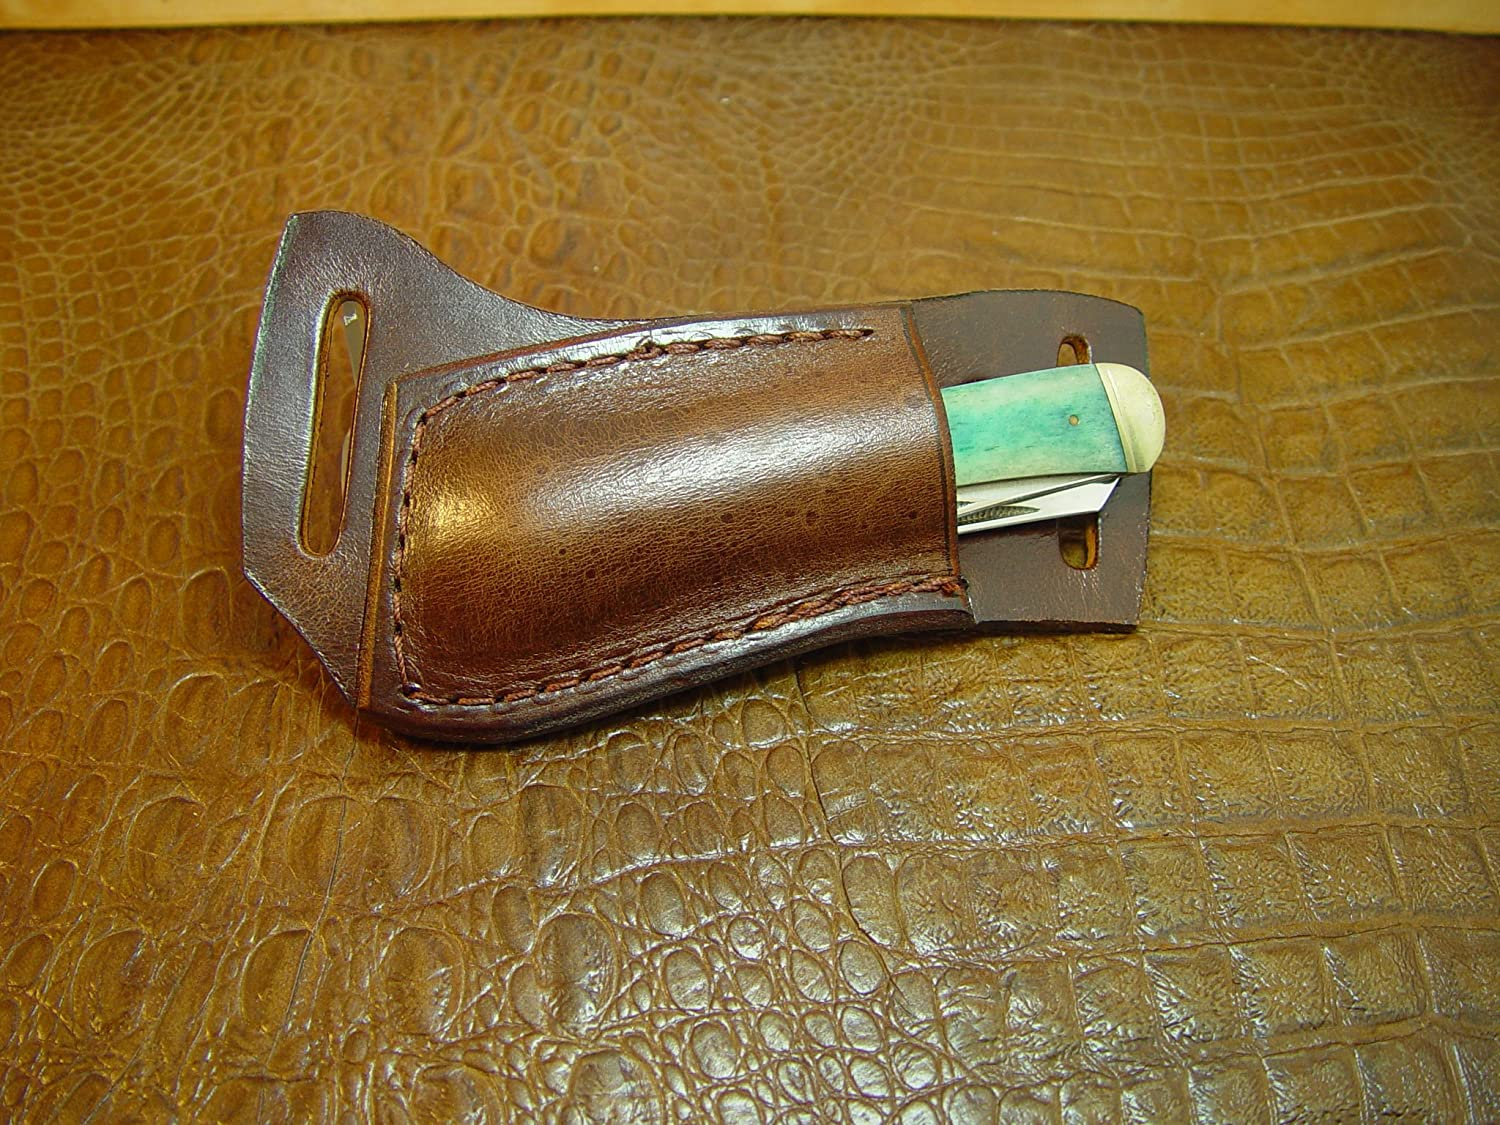 Custom Left-hand Cross Draw Trapper Style Folding Knife Sheath. Made Out of 10 Ounce Buffalo Hide Leather. Dyed Light Brown Sheath Only Knife Not Included.